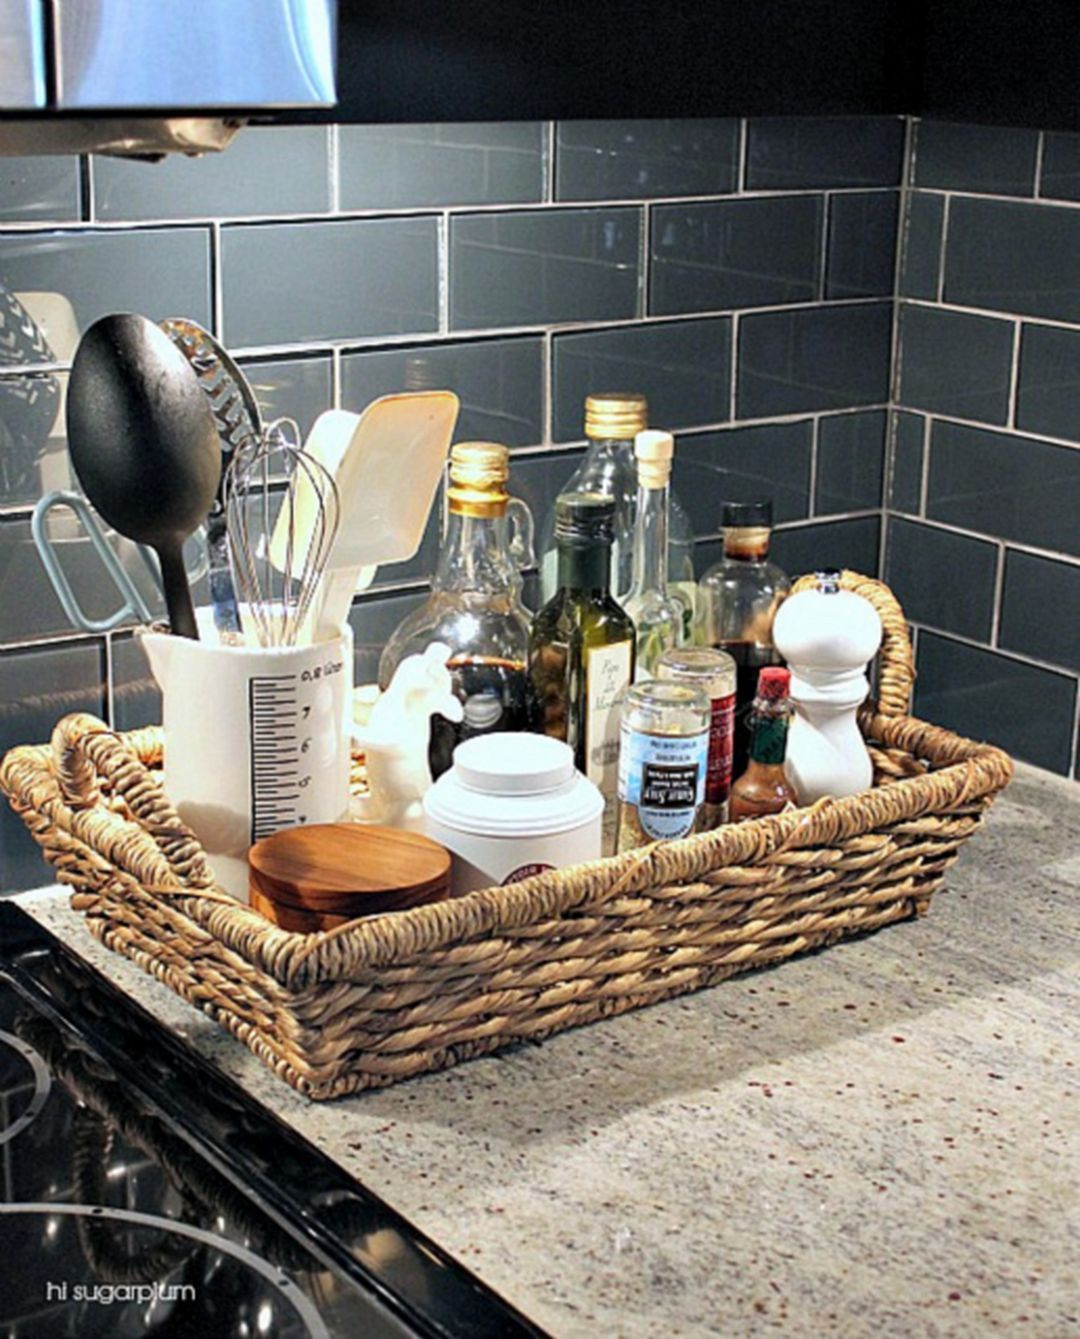 incredible kitchen counter organization ideas 377 decoor quirky kitchen decor apartment on kitchen ideas quirky id=72444